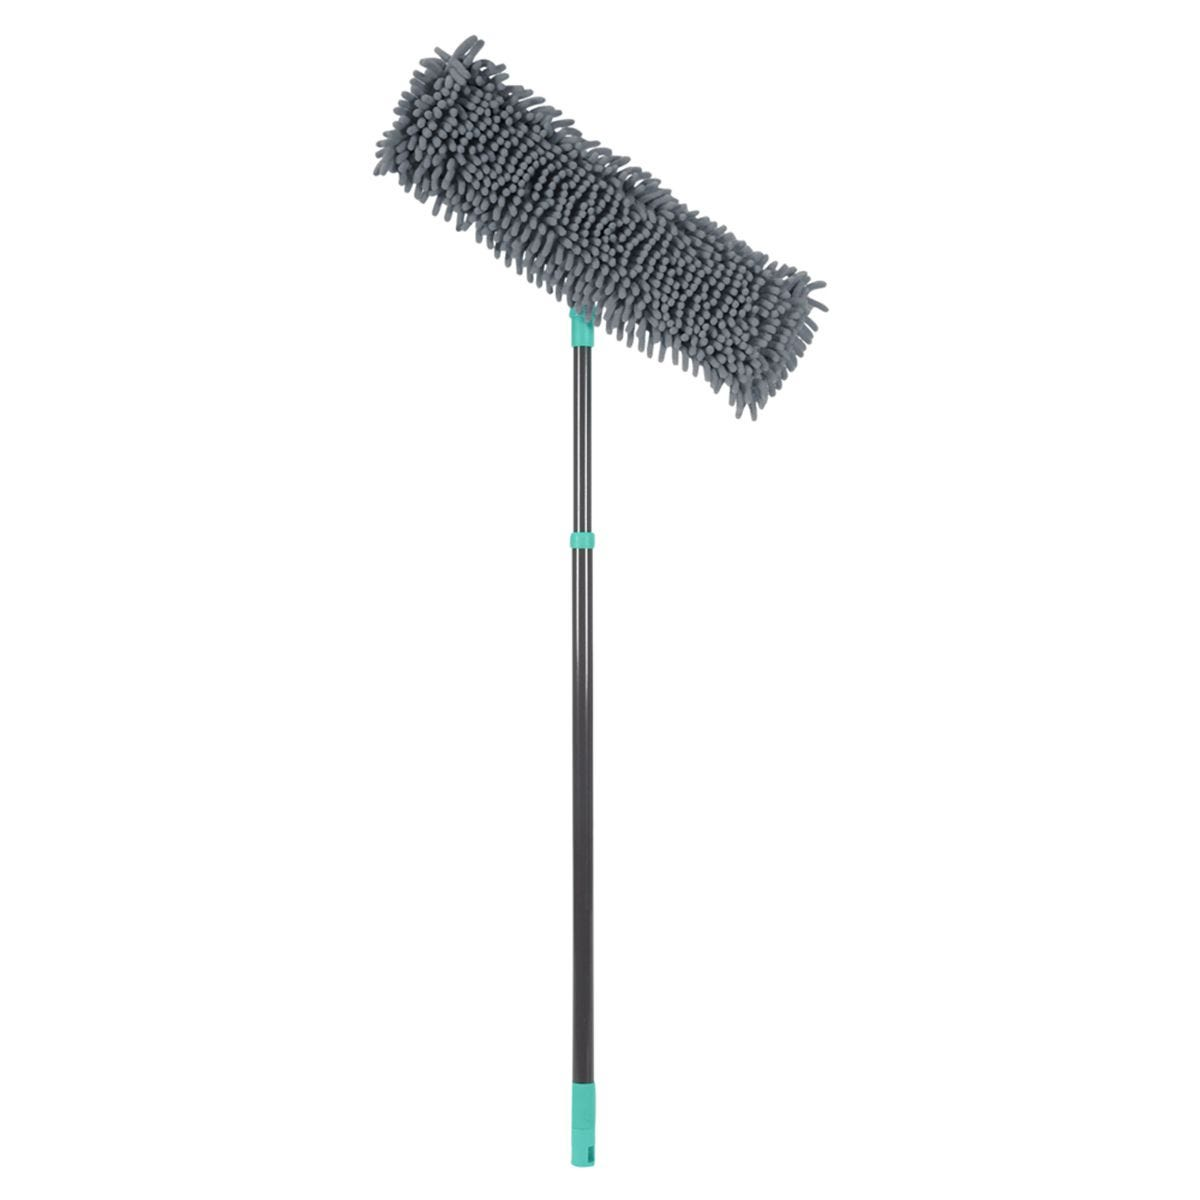 JVL Super-Absorbent Chenille Extendable Flat Floor Mop Grey/Turquoise